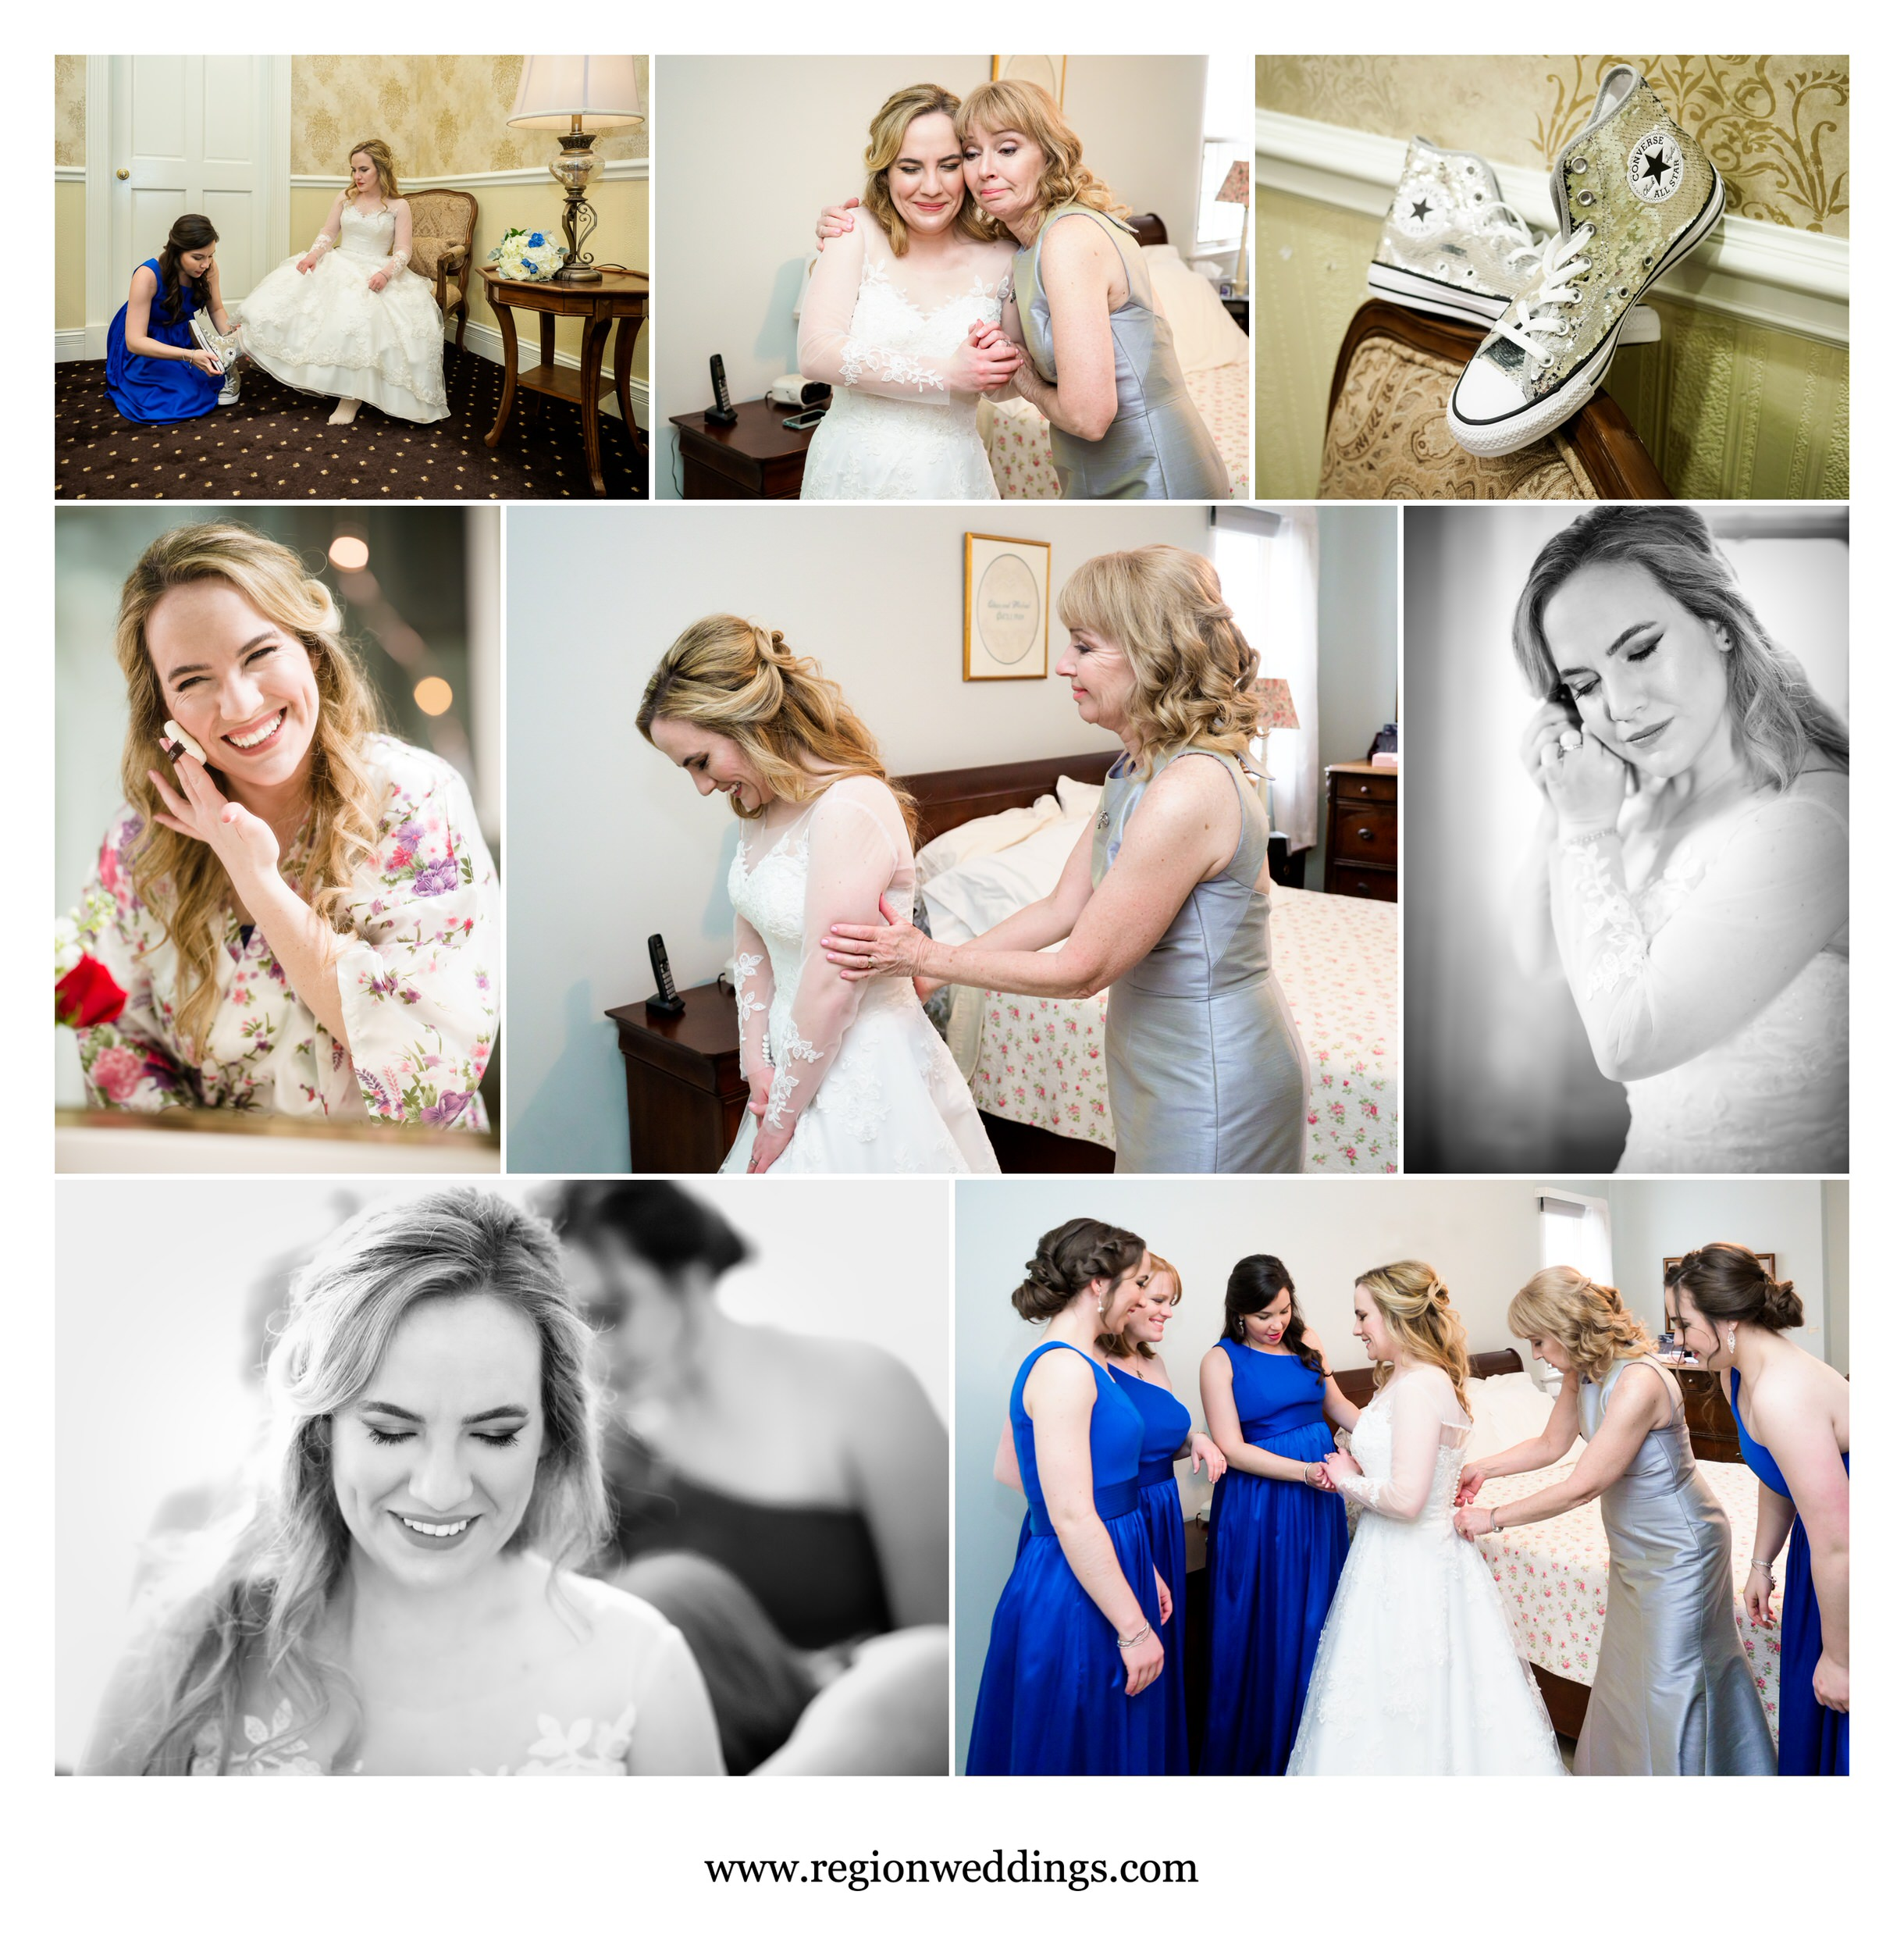 Bridal prep moments with mom, sisters and bridesmaids.